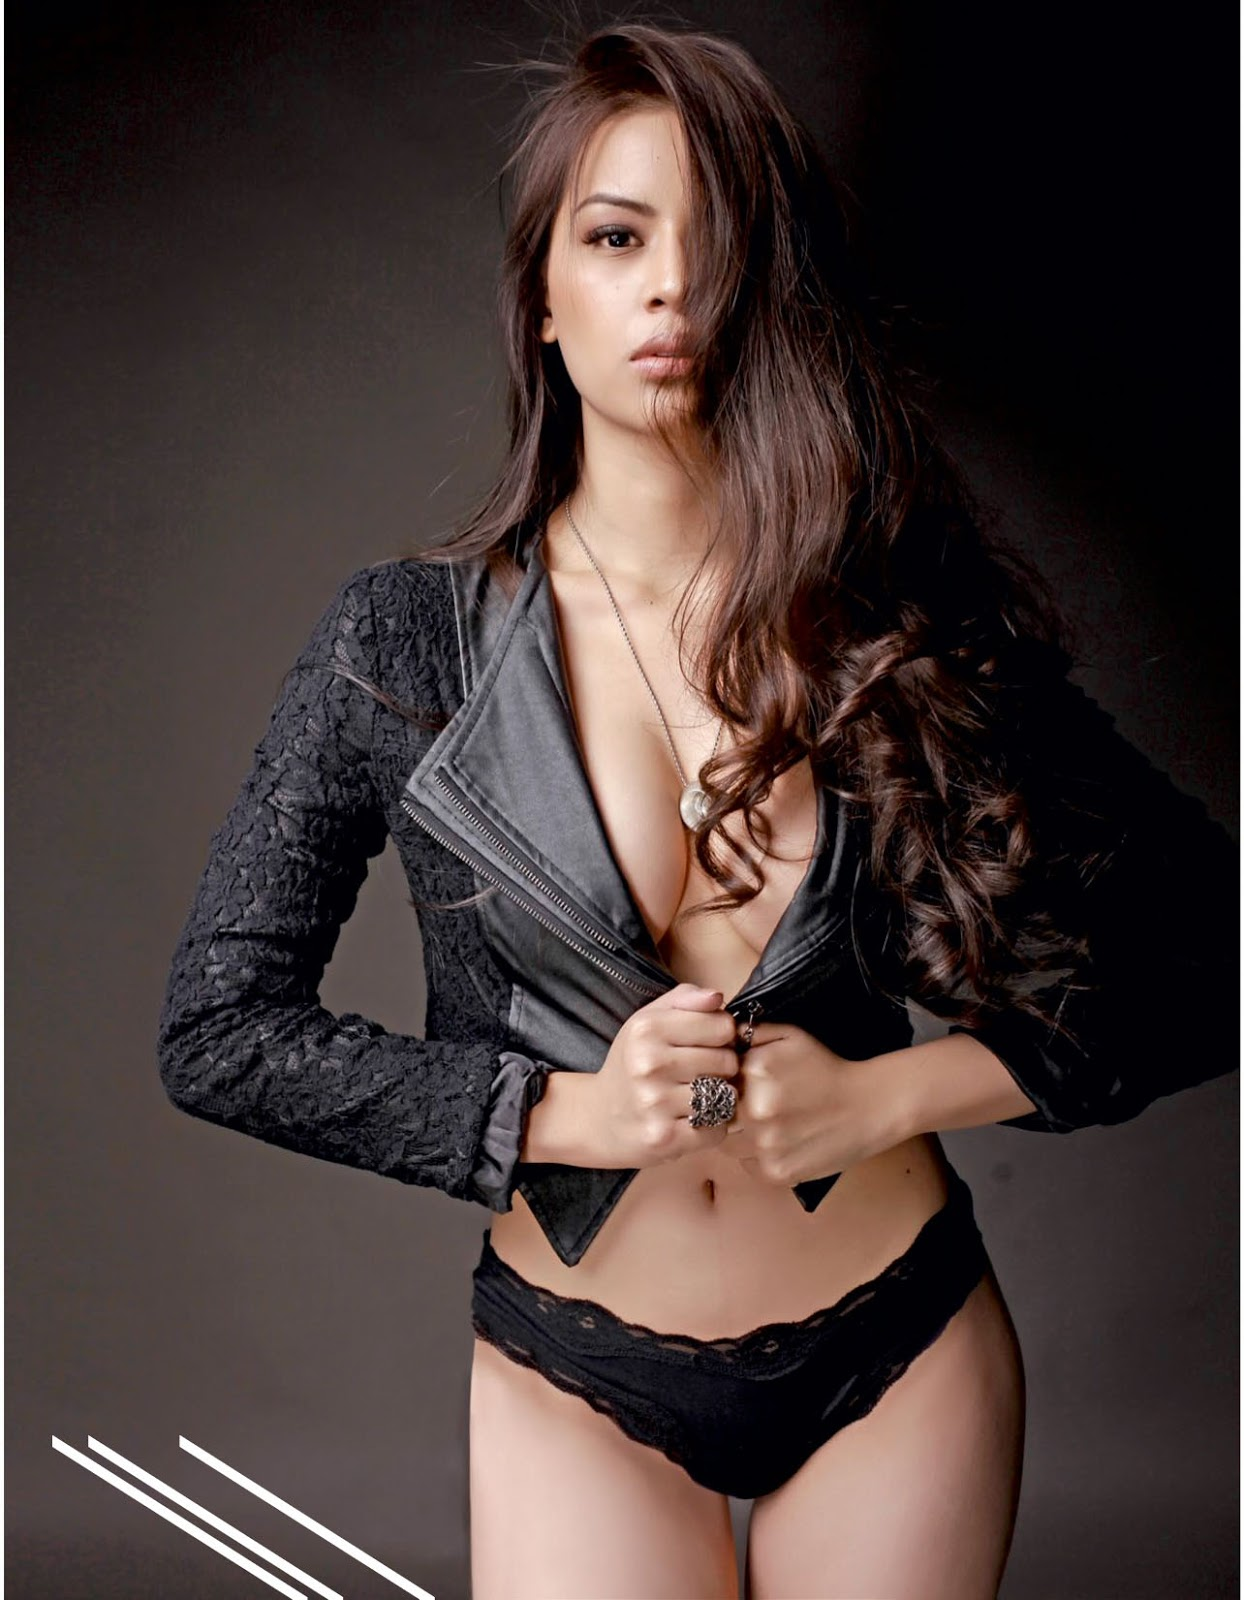 Philippines Models Gallery Maica Palo Fhm 100 Sexiest Women-6738